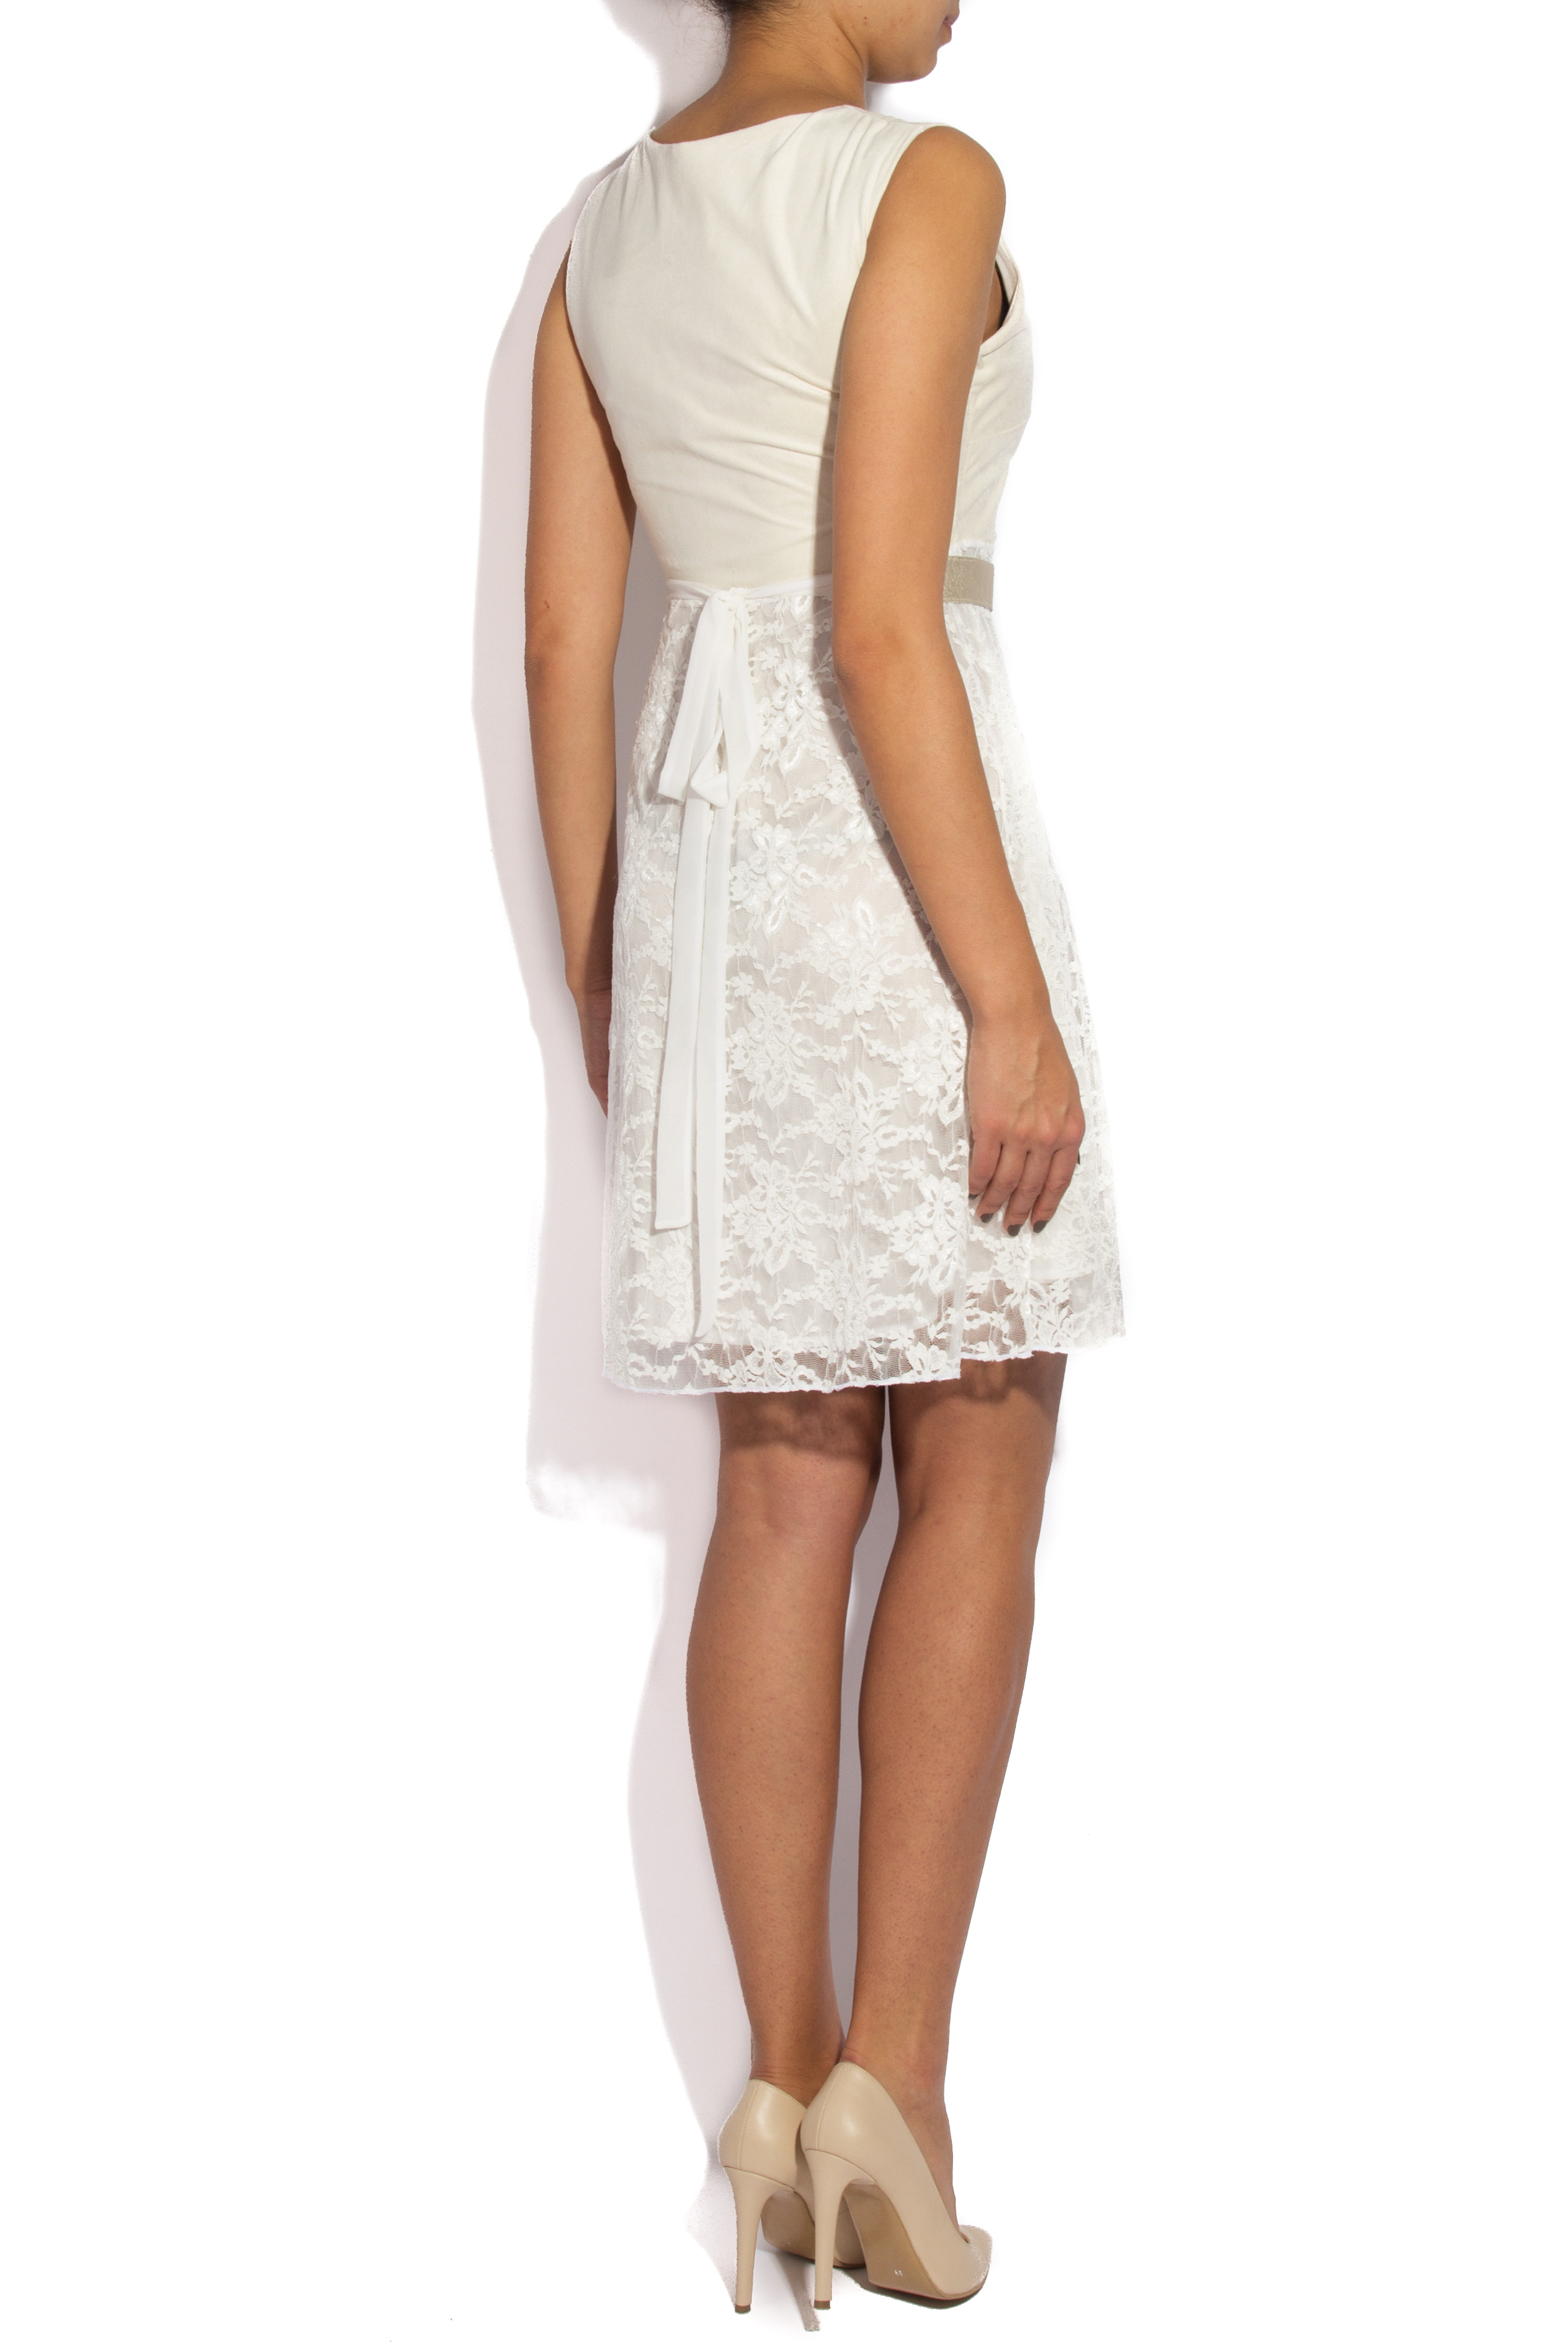 White lace and velvet dress B.A.D. Style by Adriana Barar image 2